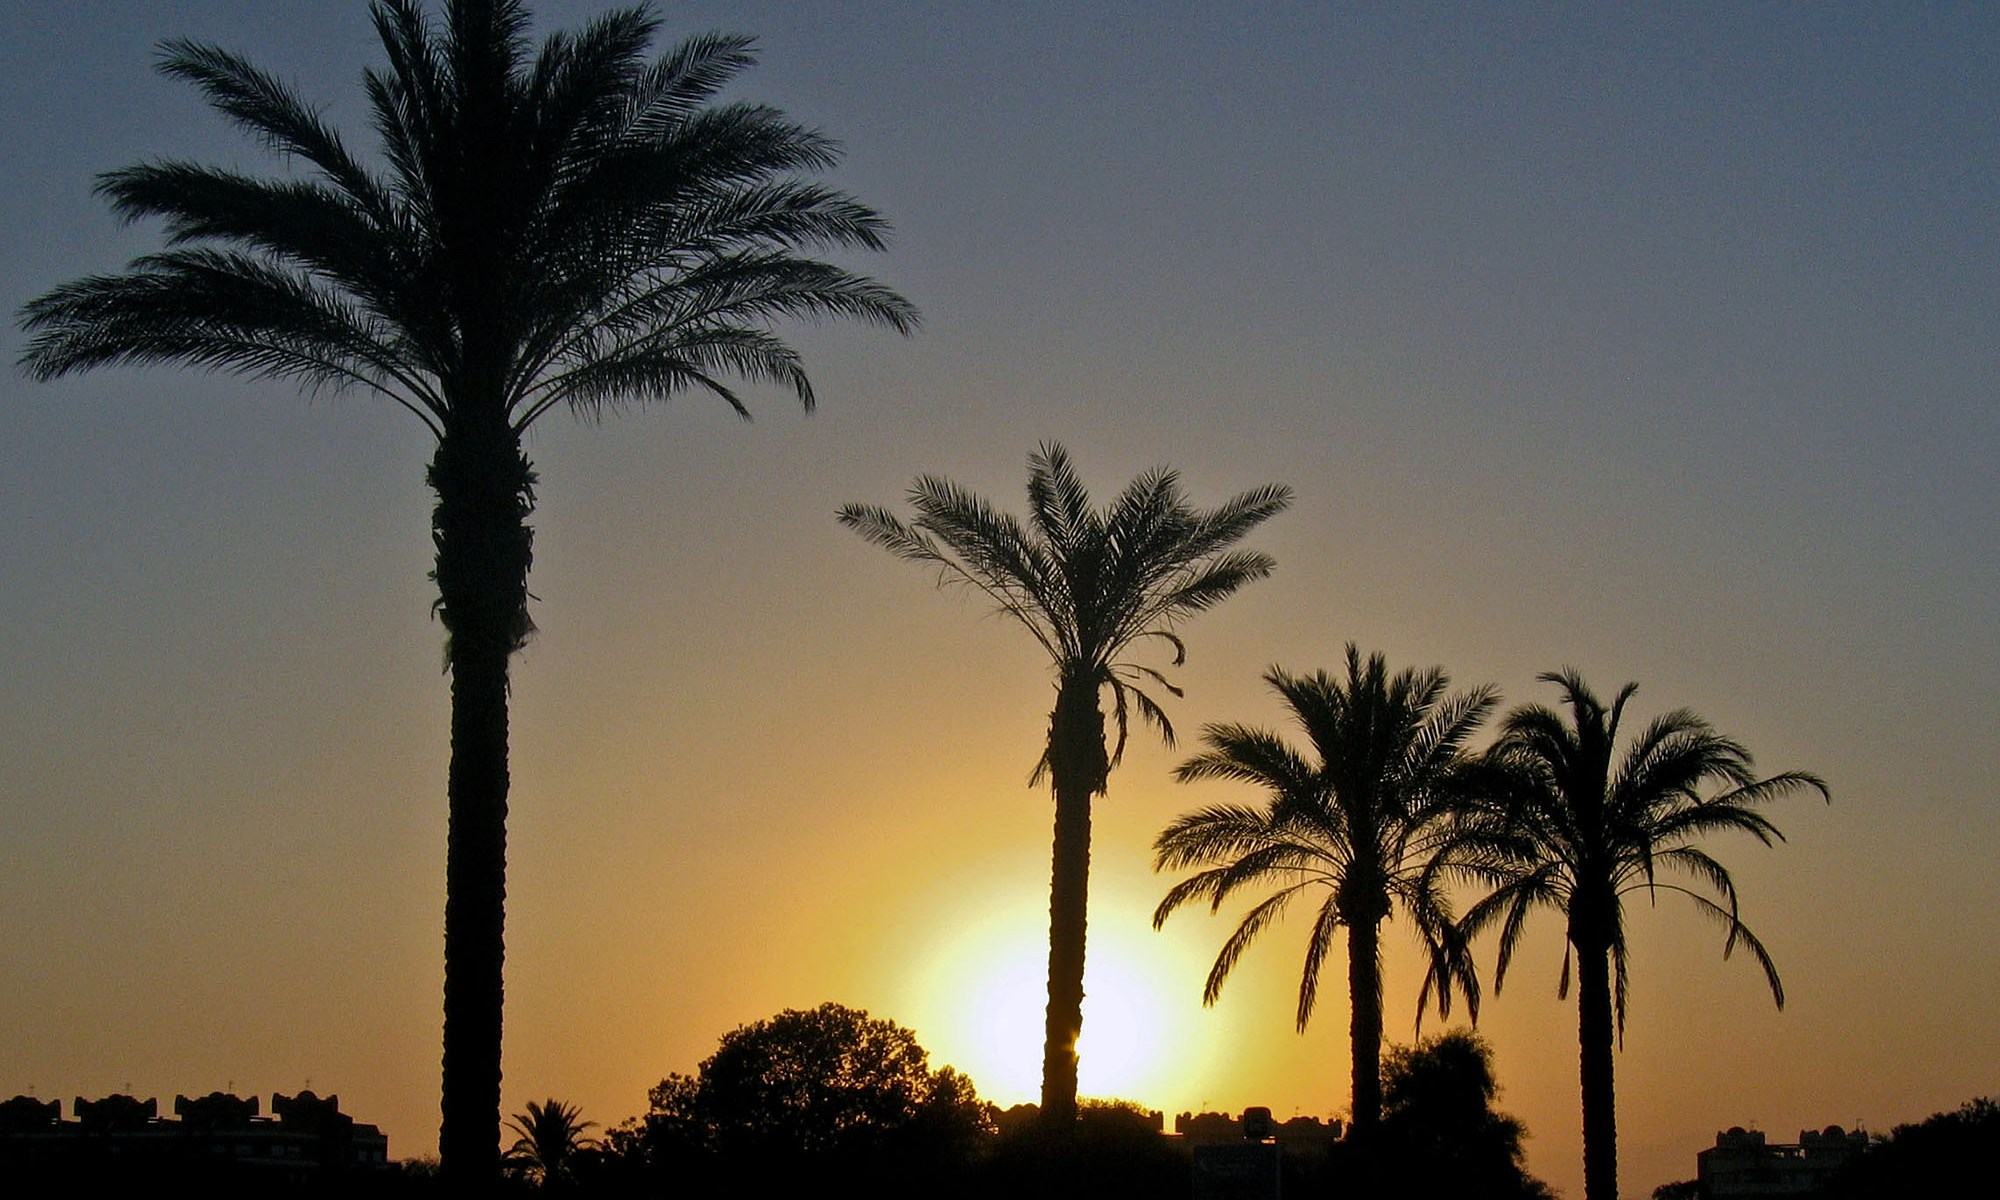 Sunset behind Palm trees in Spain